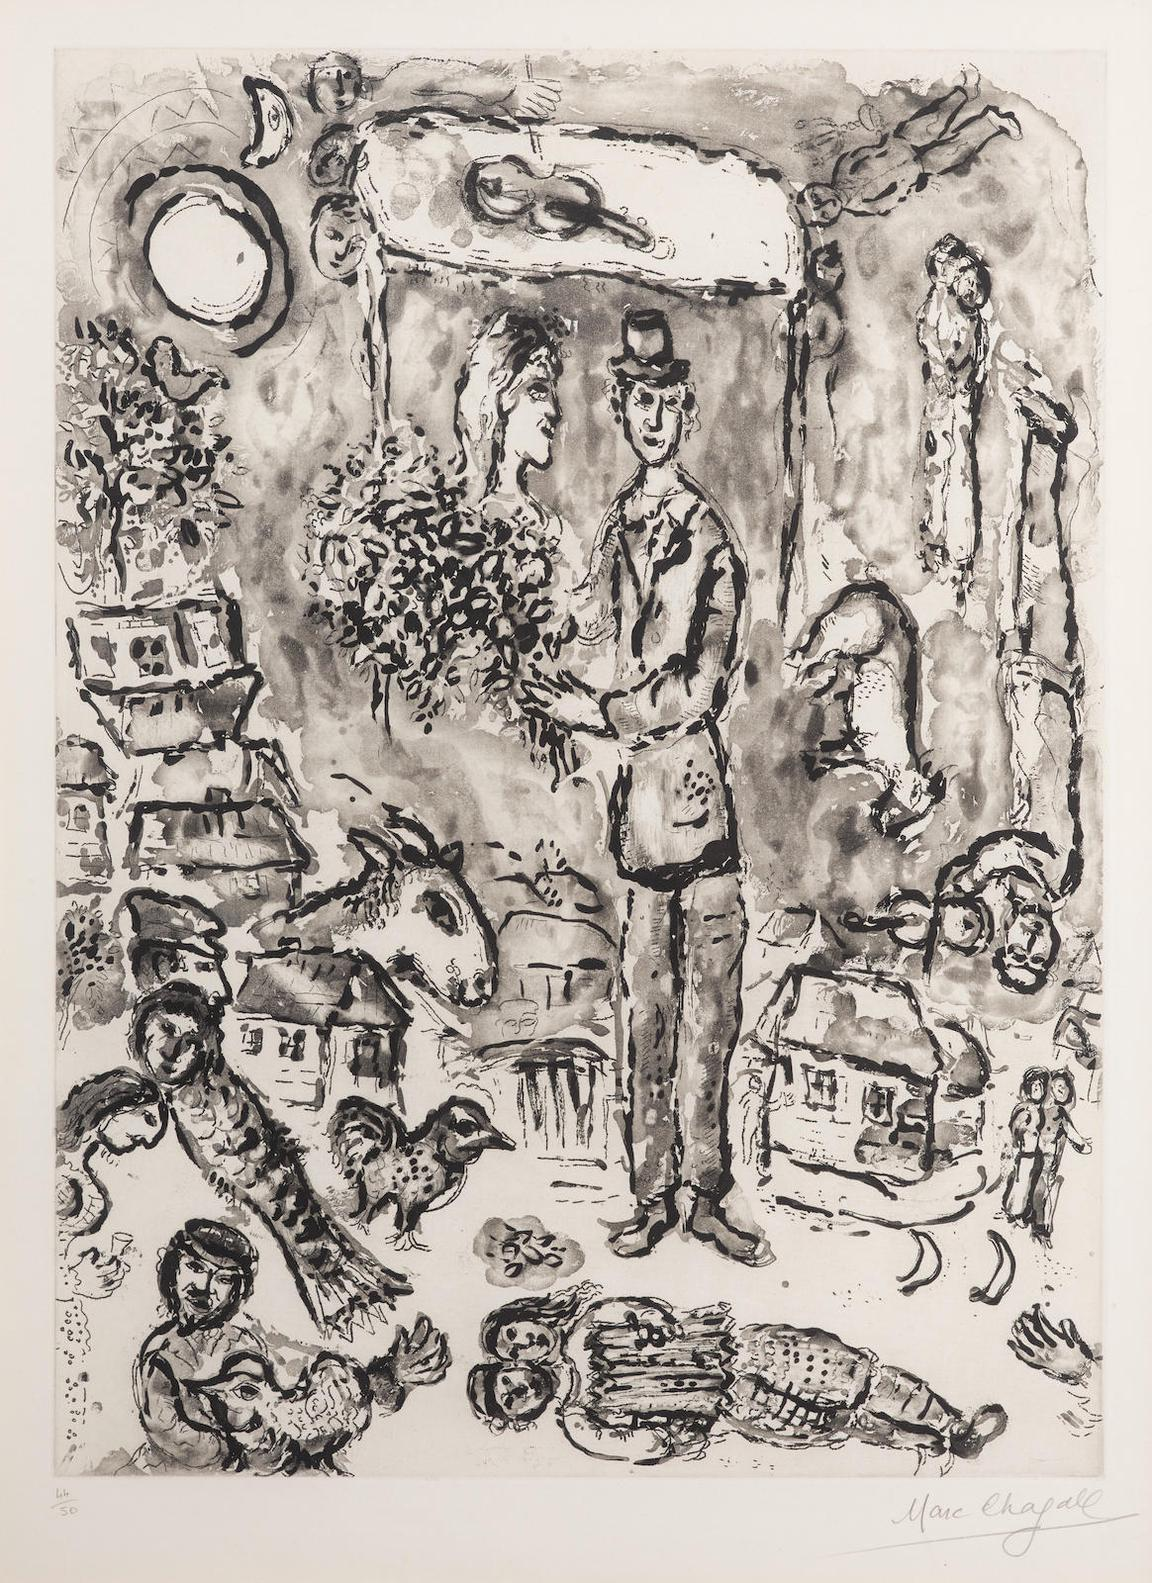 Marc Chagall-Le Mariage-1968